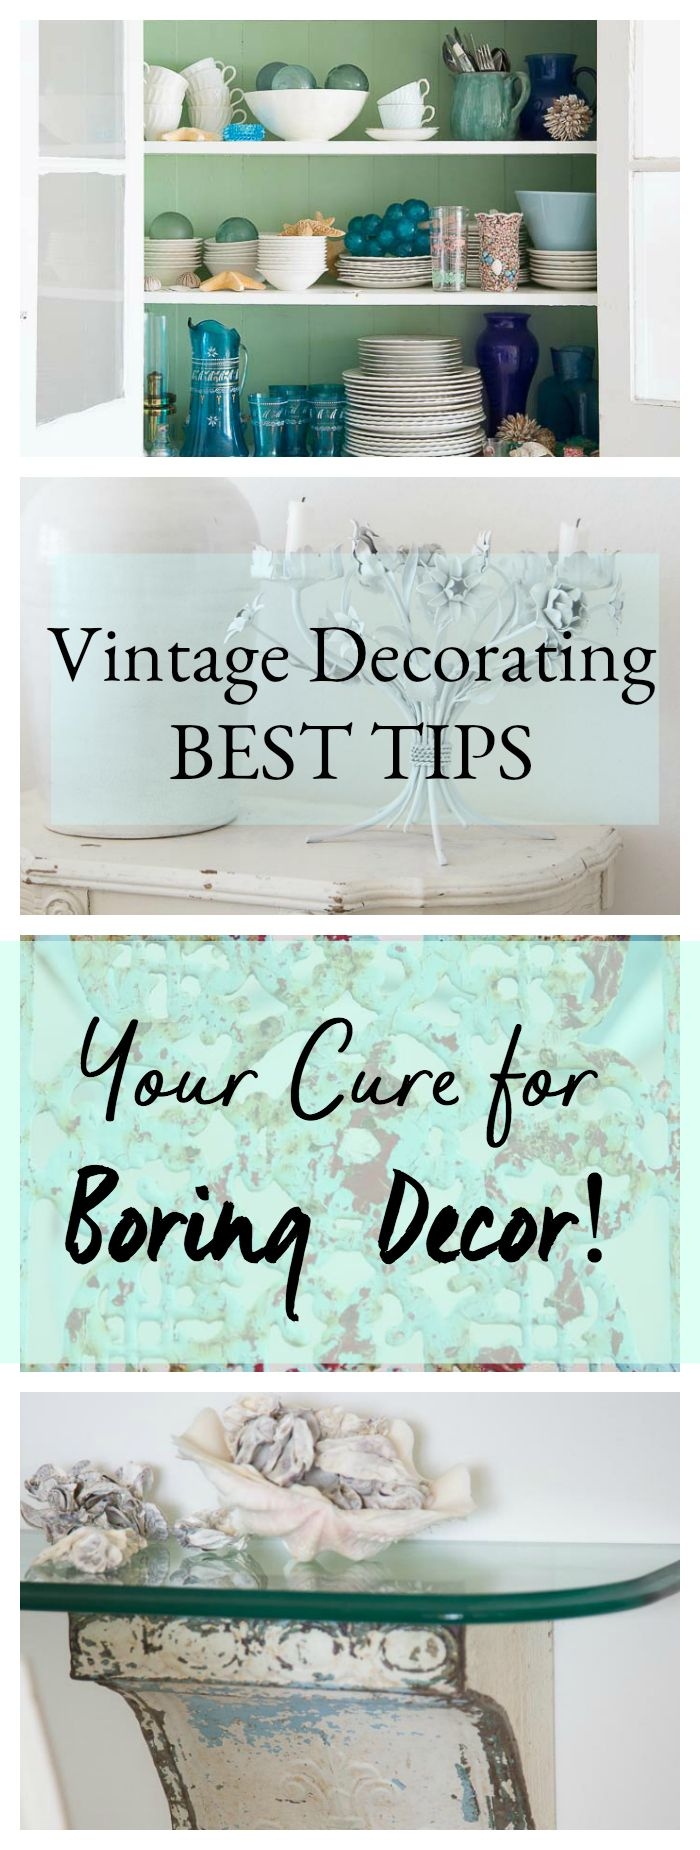 How to decorate your home with vintage lighting, vintage furniture and repurpose vintage pieces for a modern eclectic look in your home...shabbyfufublog.com  #vintagedecor #interiordecorating #vintage